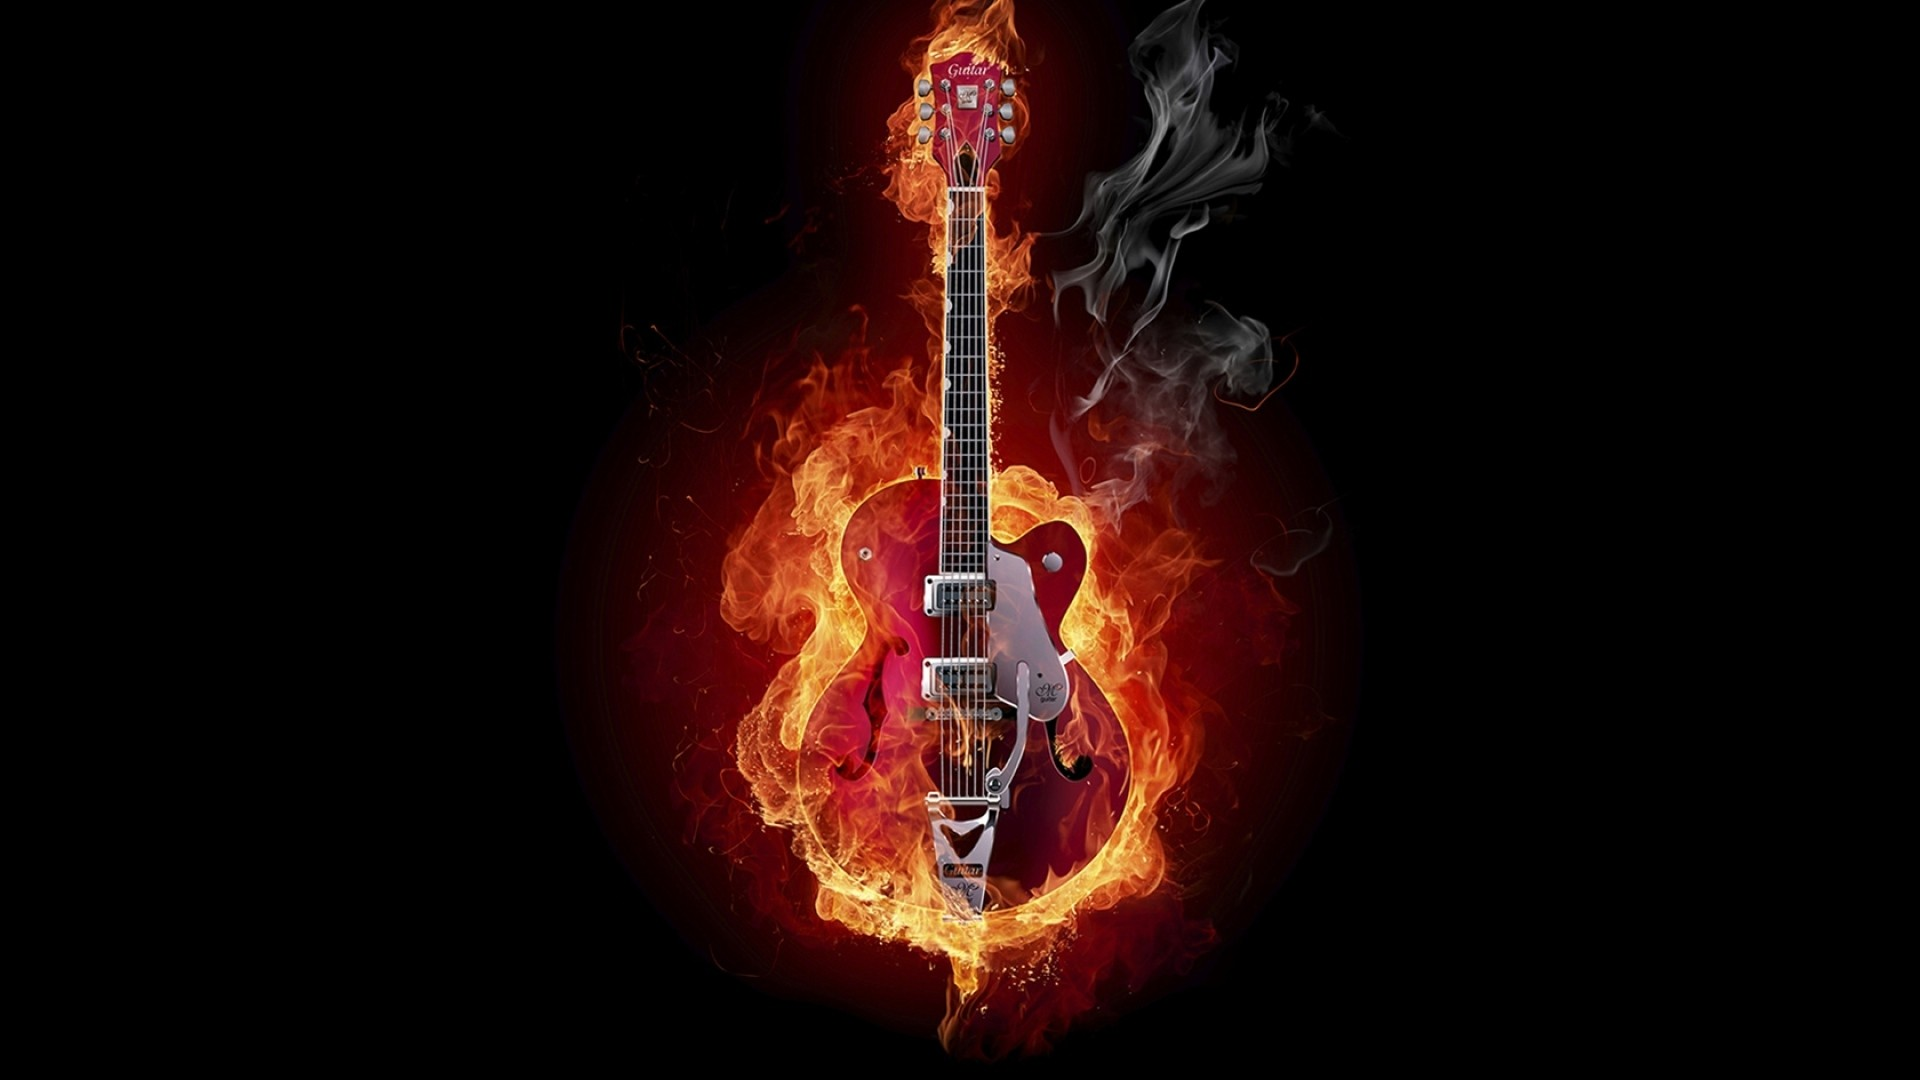 Preview wallpaper guitar, fire, instrument, smoke, background 1920×1080